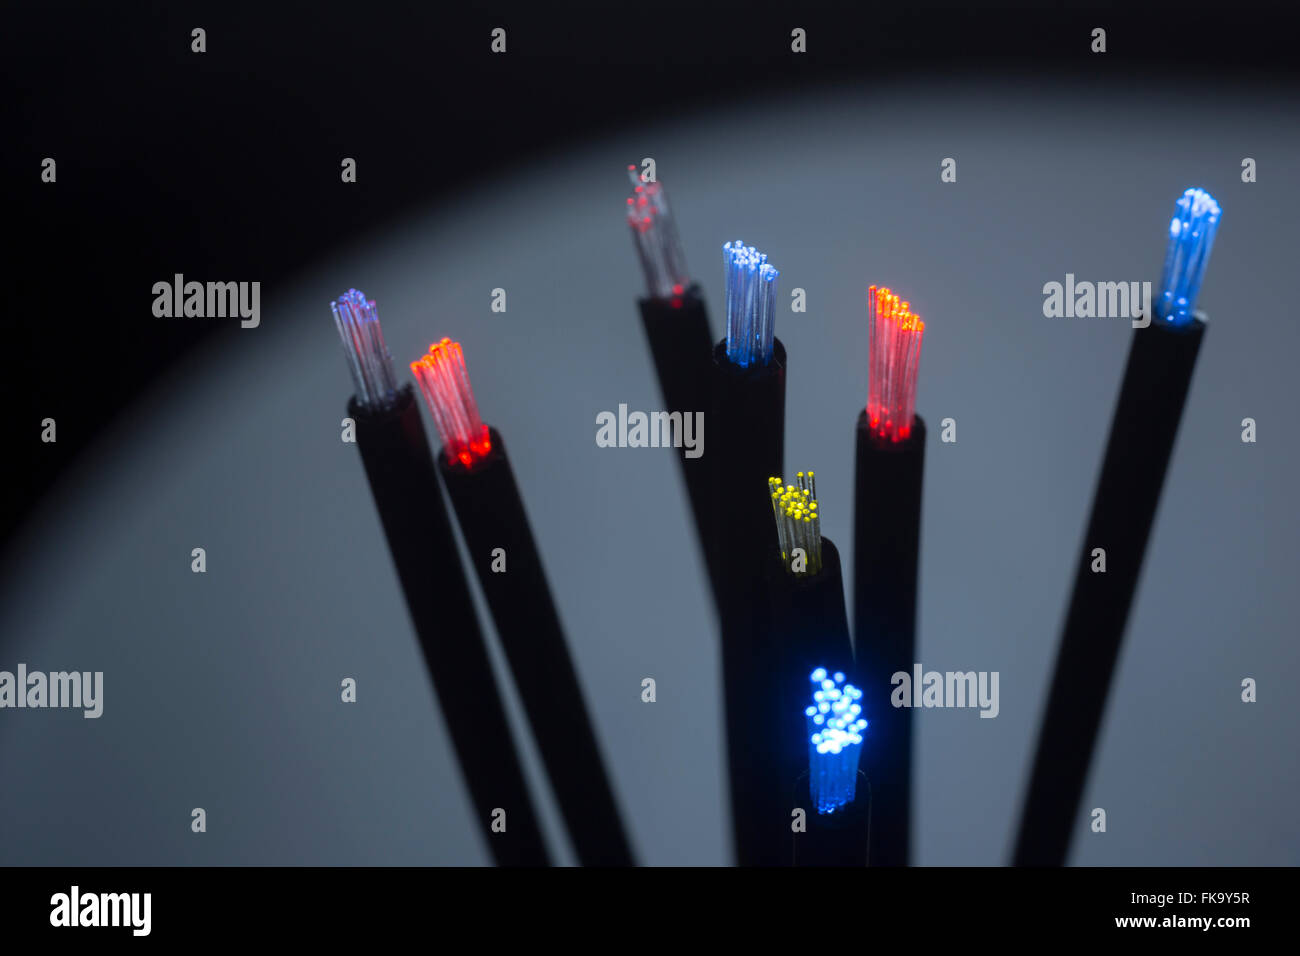 LIT TIPS OF FIBER OPTIC CABLES (©KECK MAURER & SCHULTZ / CORNING GLASS WORKS 1970) - Stock Image